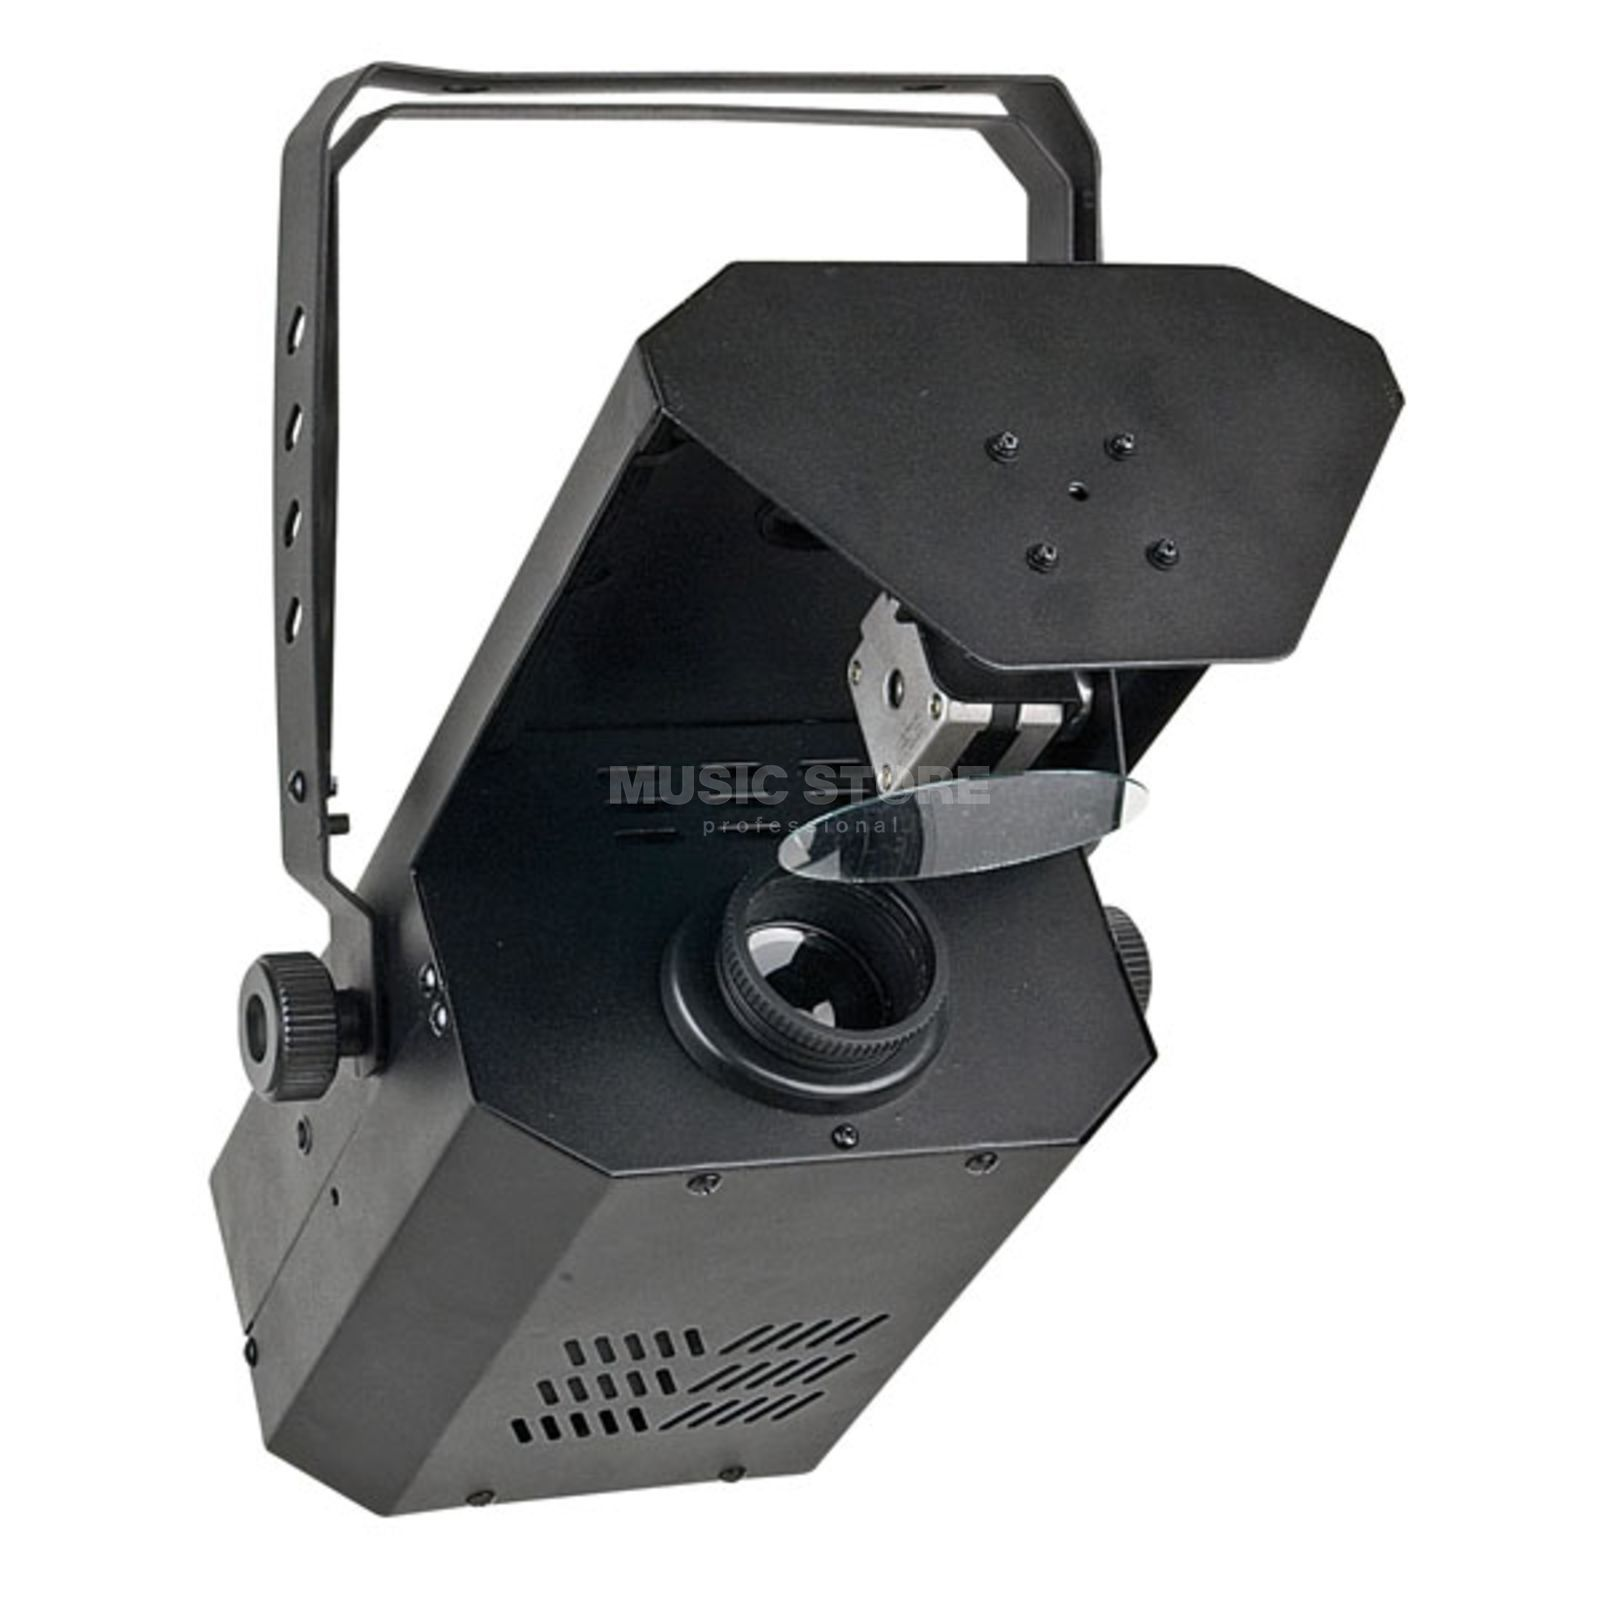 Showtec Showtec Club Scan LED 20W LED Scanner Product Image